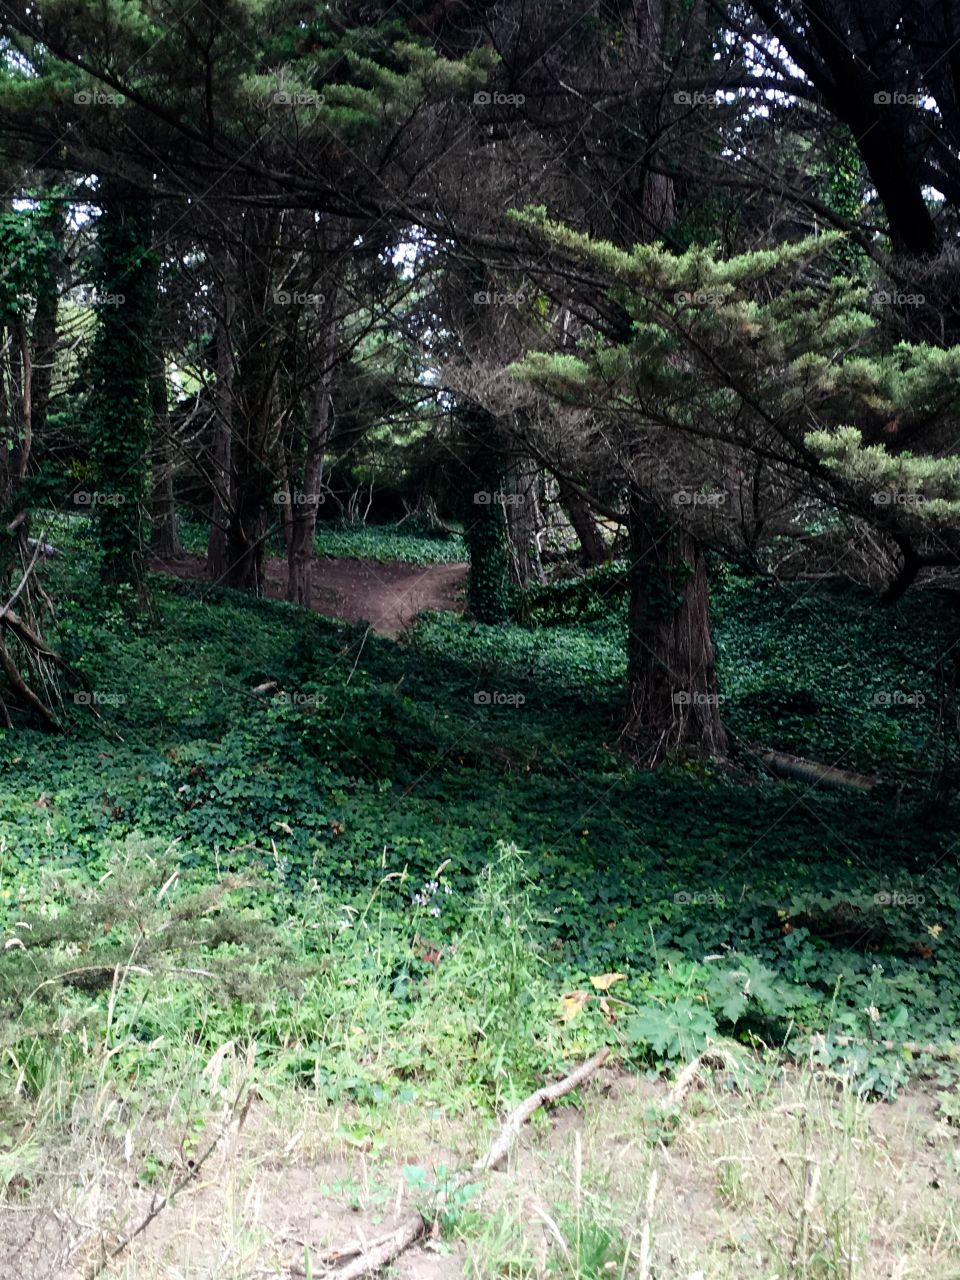 West coast forest